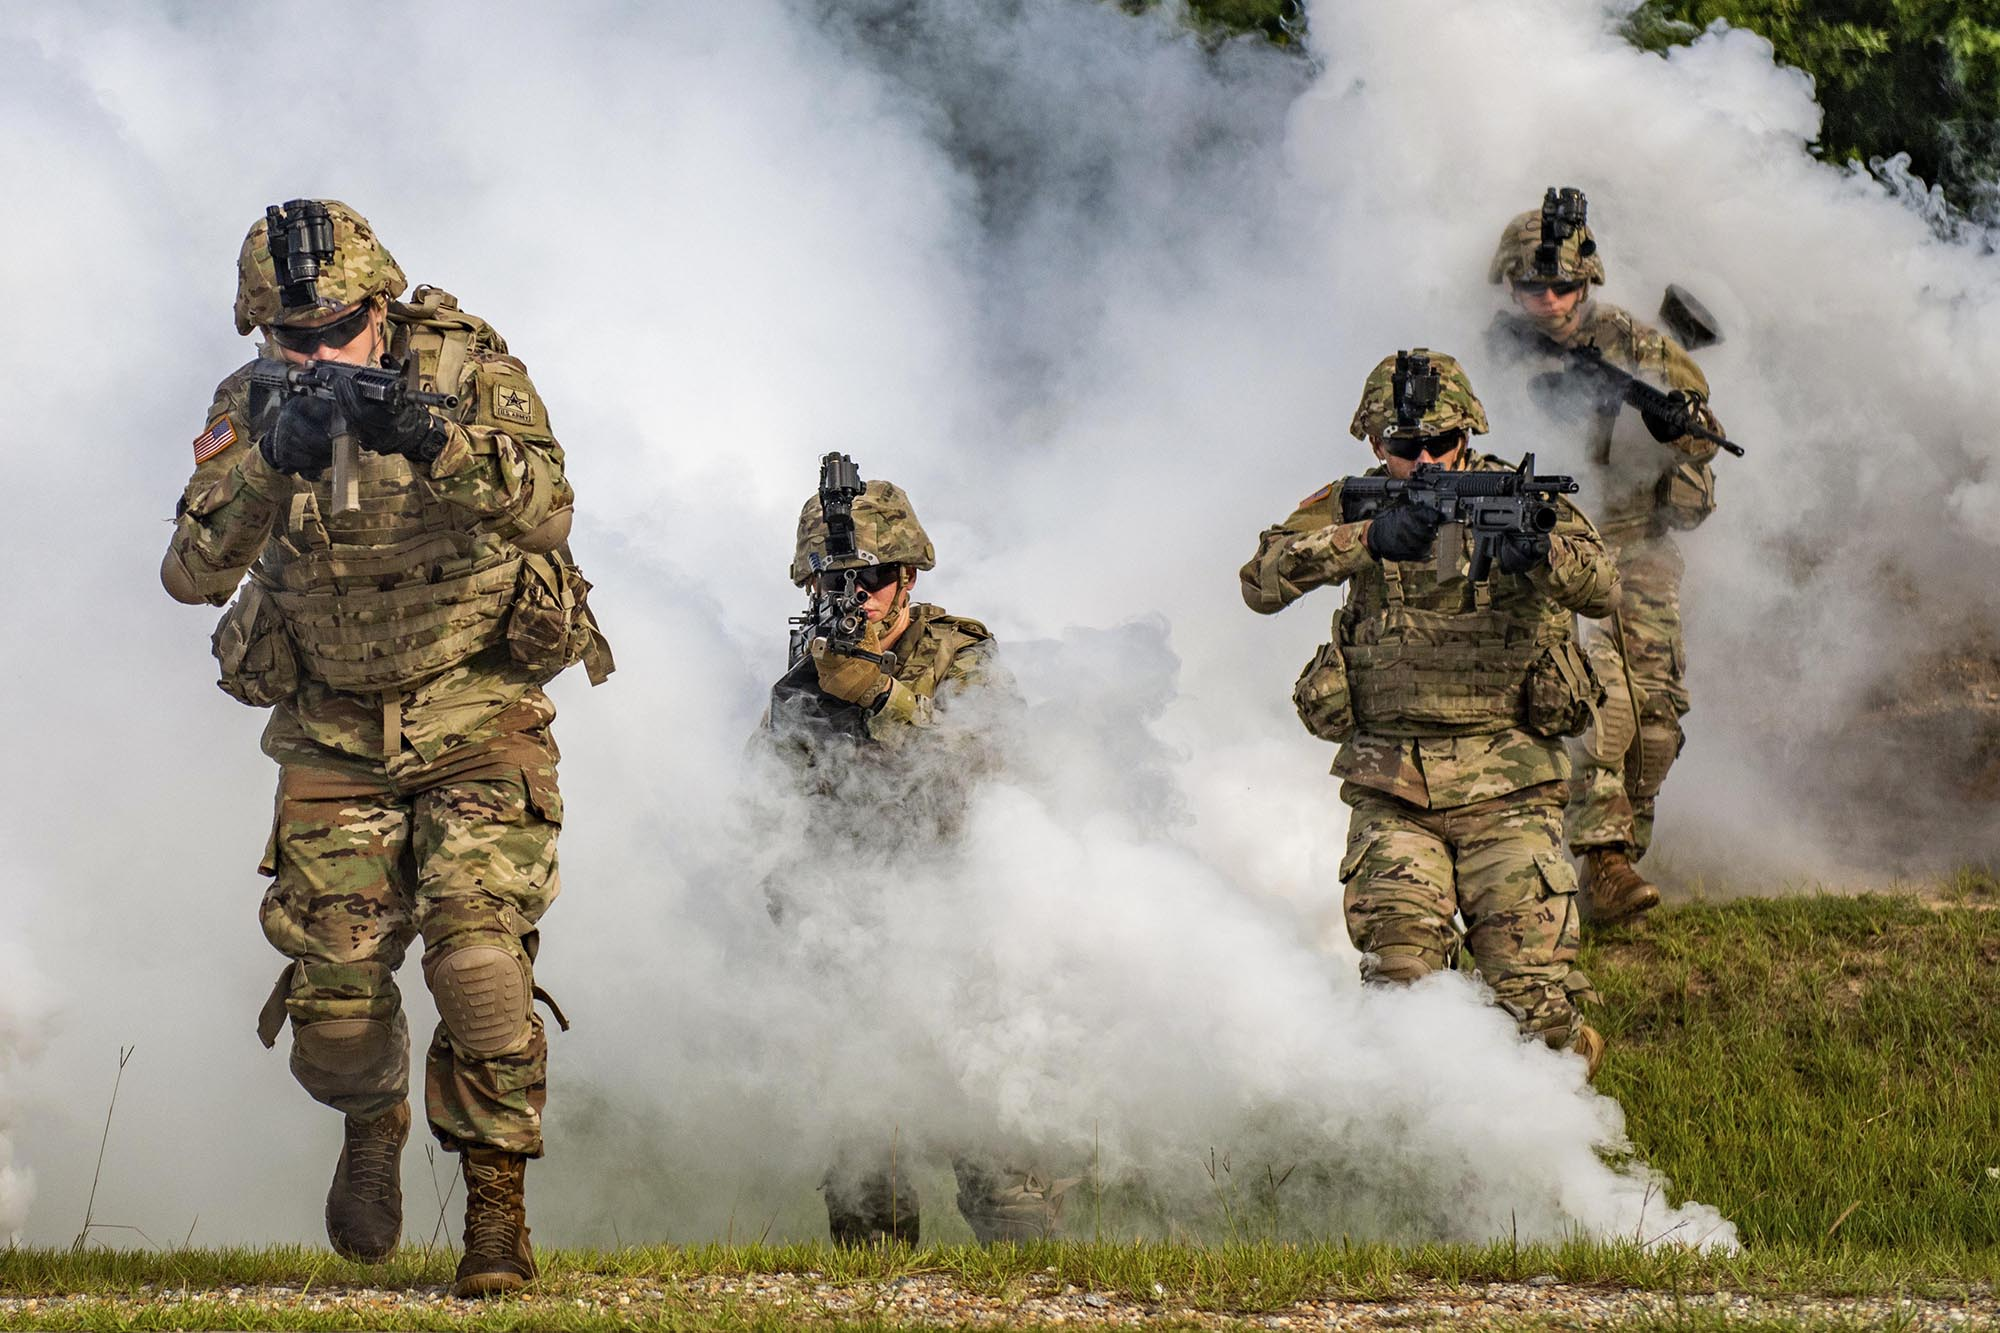 Soldiers maneuver as an Infantry Rifle Squad Aug. 21, 2020, on Sand Hill at Fort Benning, Ga. (Patrick A. Albright/Army)